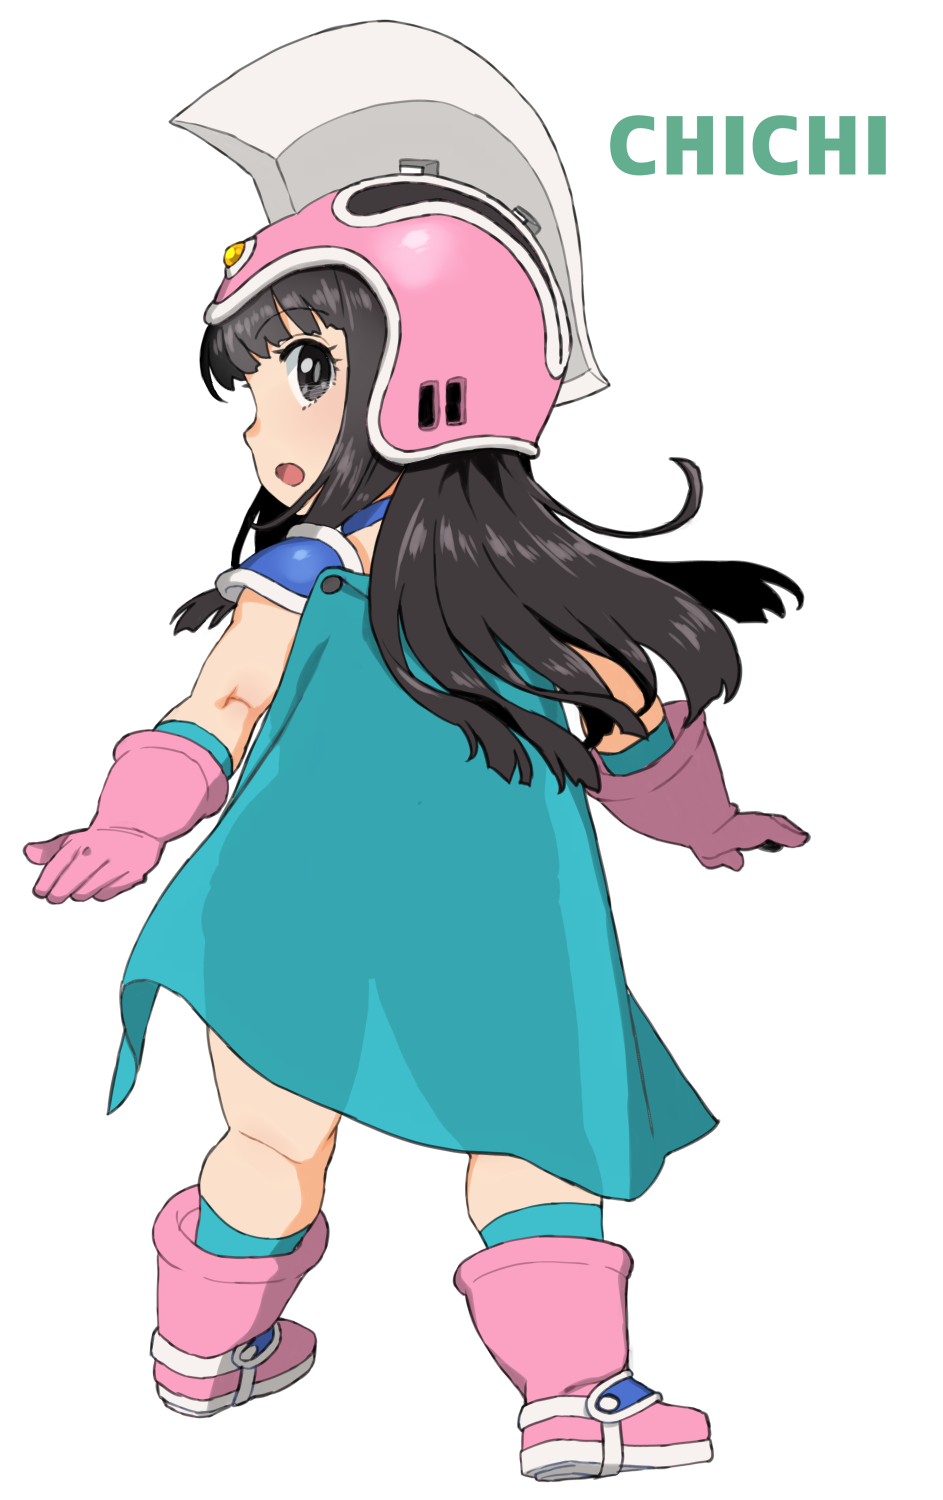 1girl armor black_eyes black_hair boots cape character_name chi-chi_(dragon_ball) child dragon_ball dragon_ball_(classic) from_behind full_body gloves green_cape helmet highres kneepits long_hair looking_back murderhouse open_mouth pauldrons pink_footwear pink_gloves pink_headwear see-through see-through_silhouette shoulder_armor silhouette simple_background solo wakaho_riku white_background